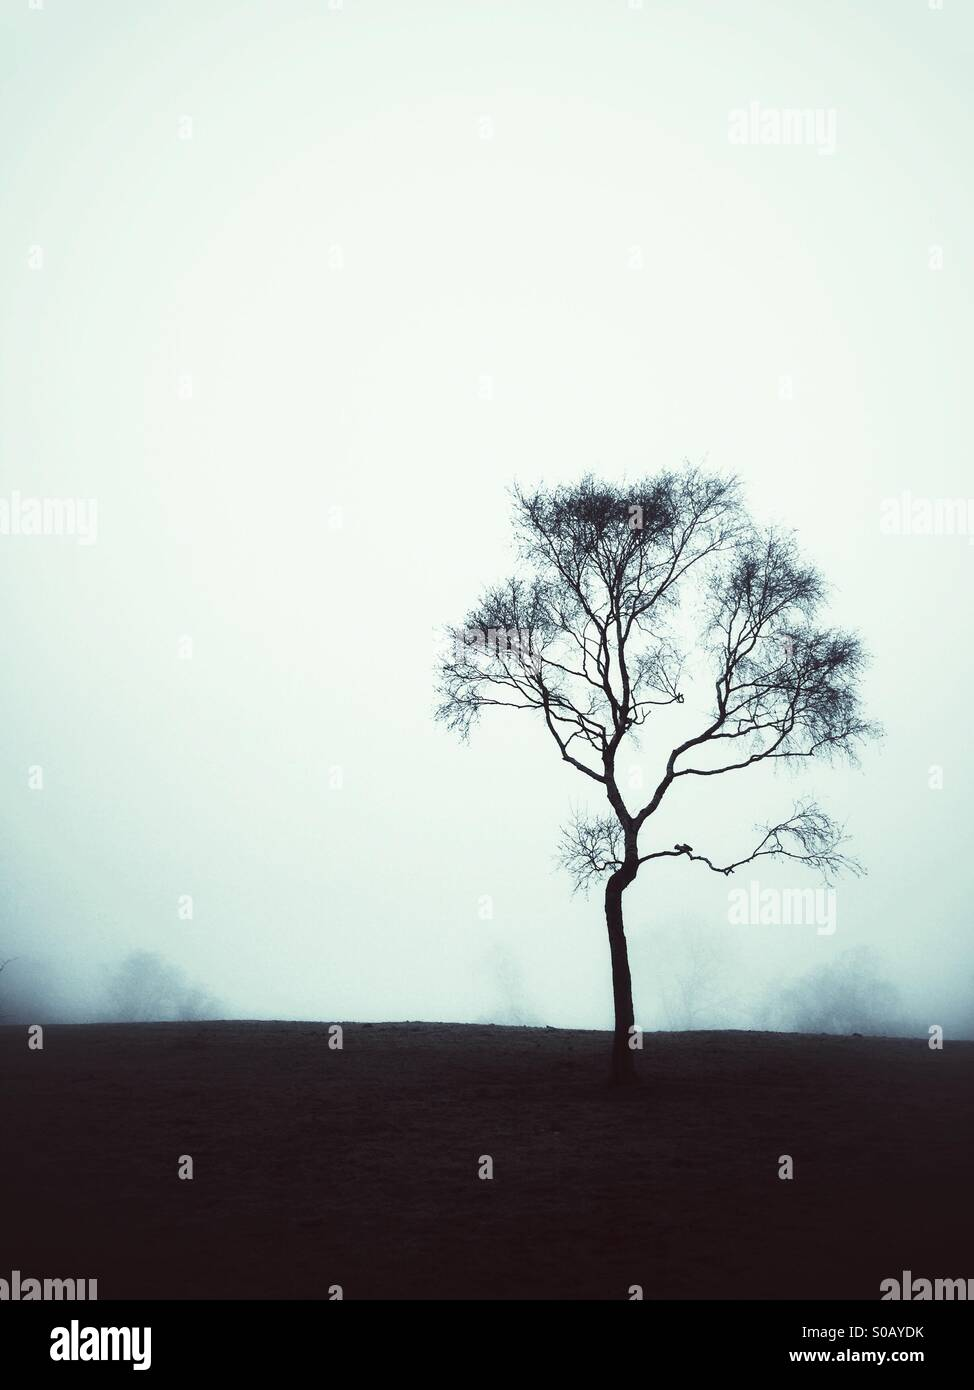 Single bare tree in the field - Stock Image